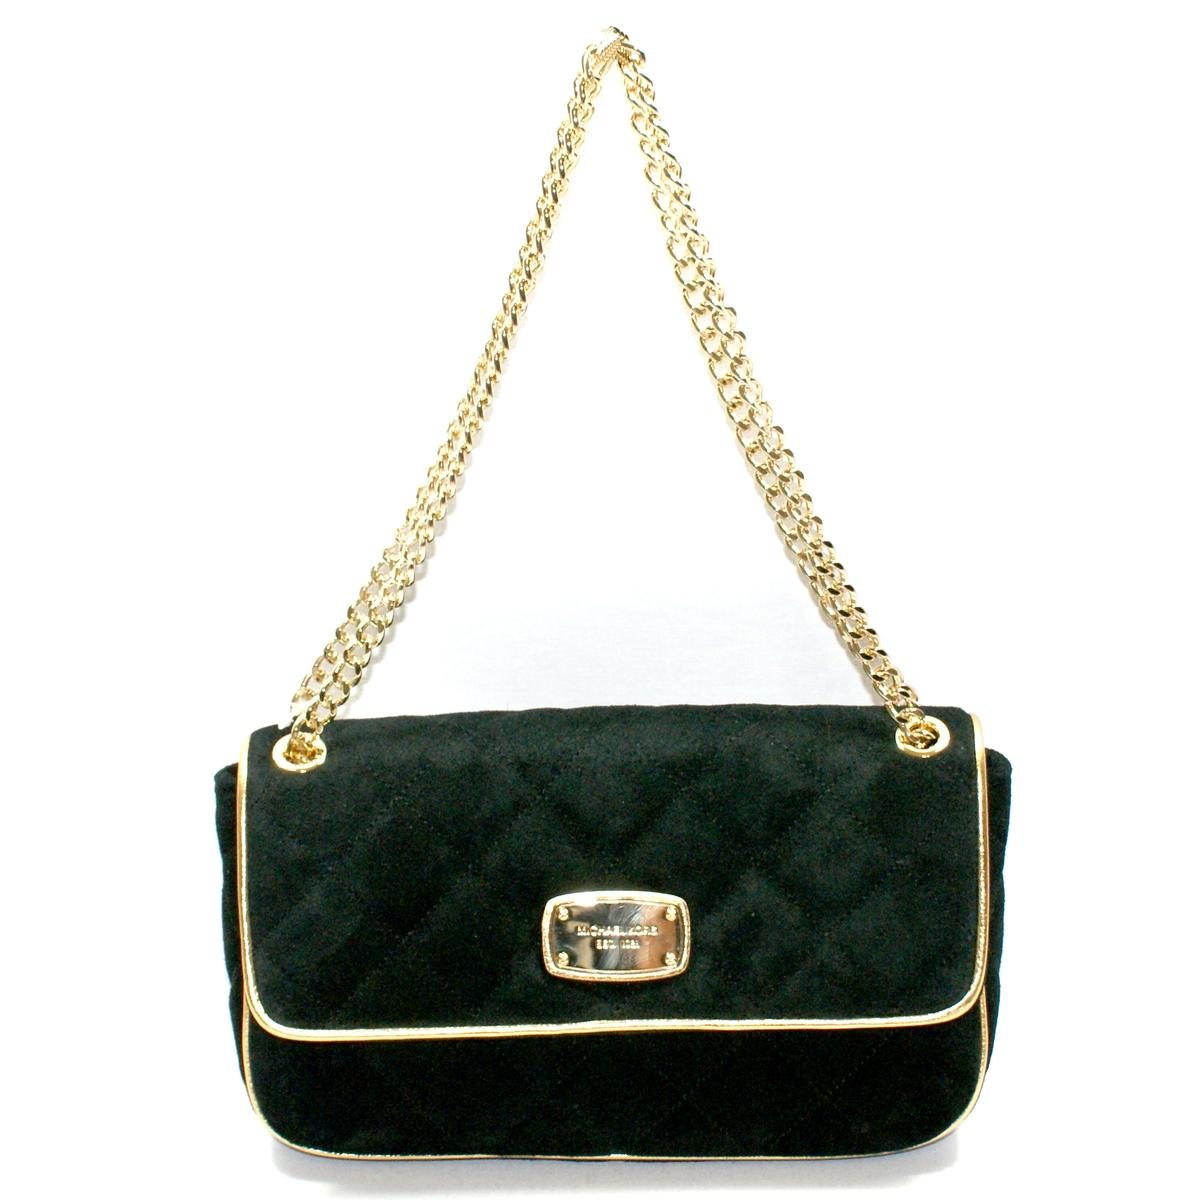 Michael Kors Chain Shoulder Bag 93